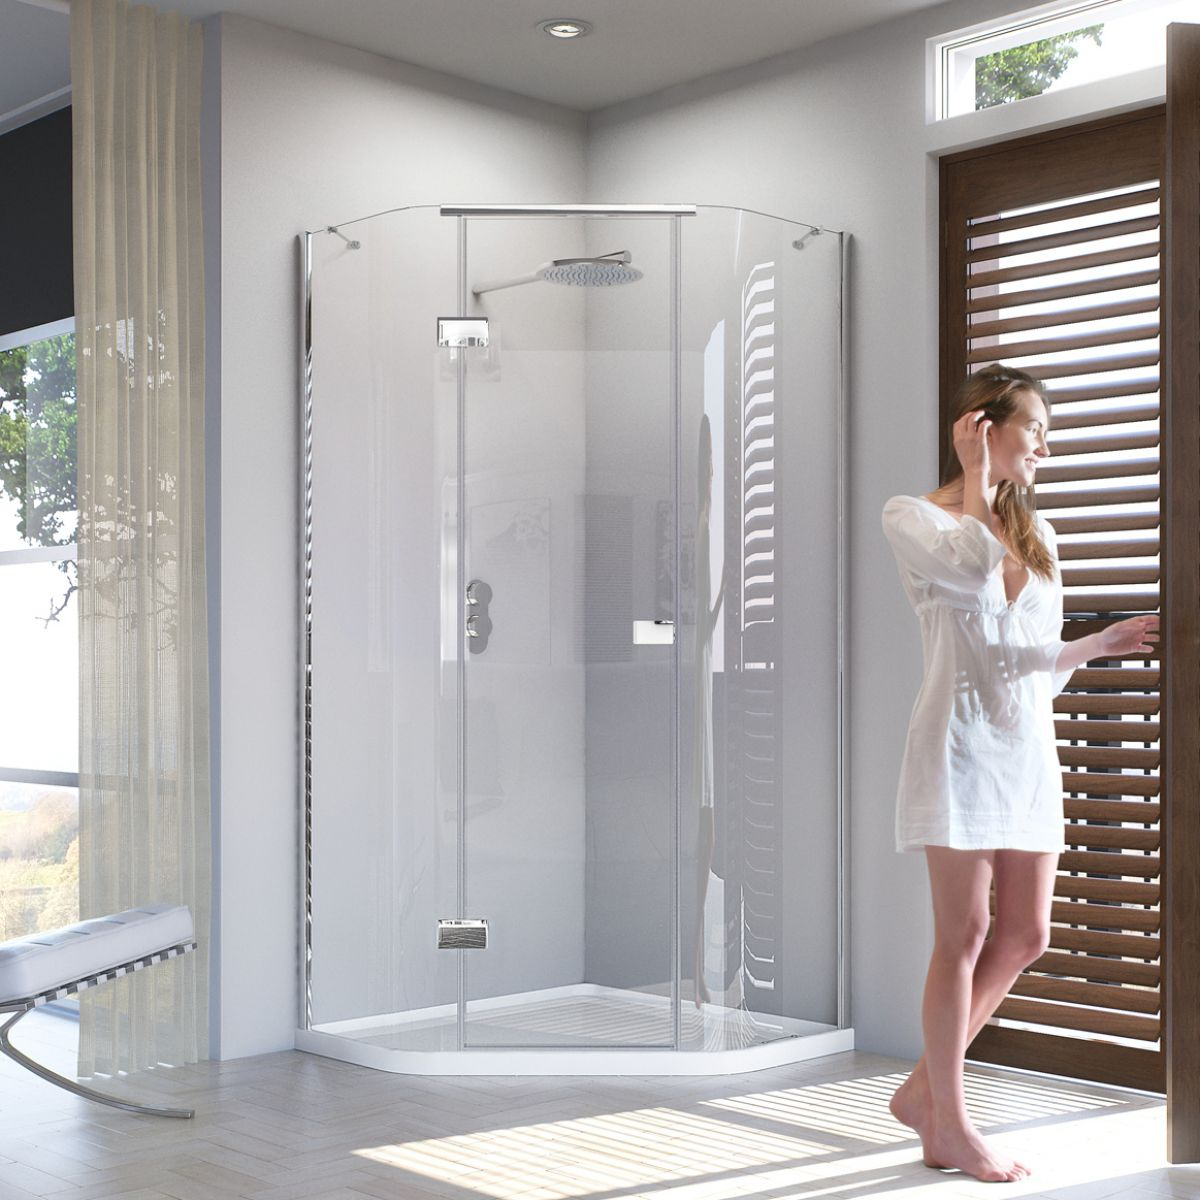 The Main Benefits Of Shower Enclosure Kits Are That They Re Regularly Designed To Fit Every Small Or Medium Sized Bathroom Which Is Almost Other